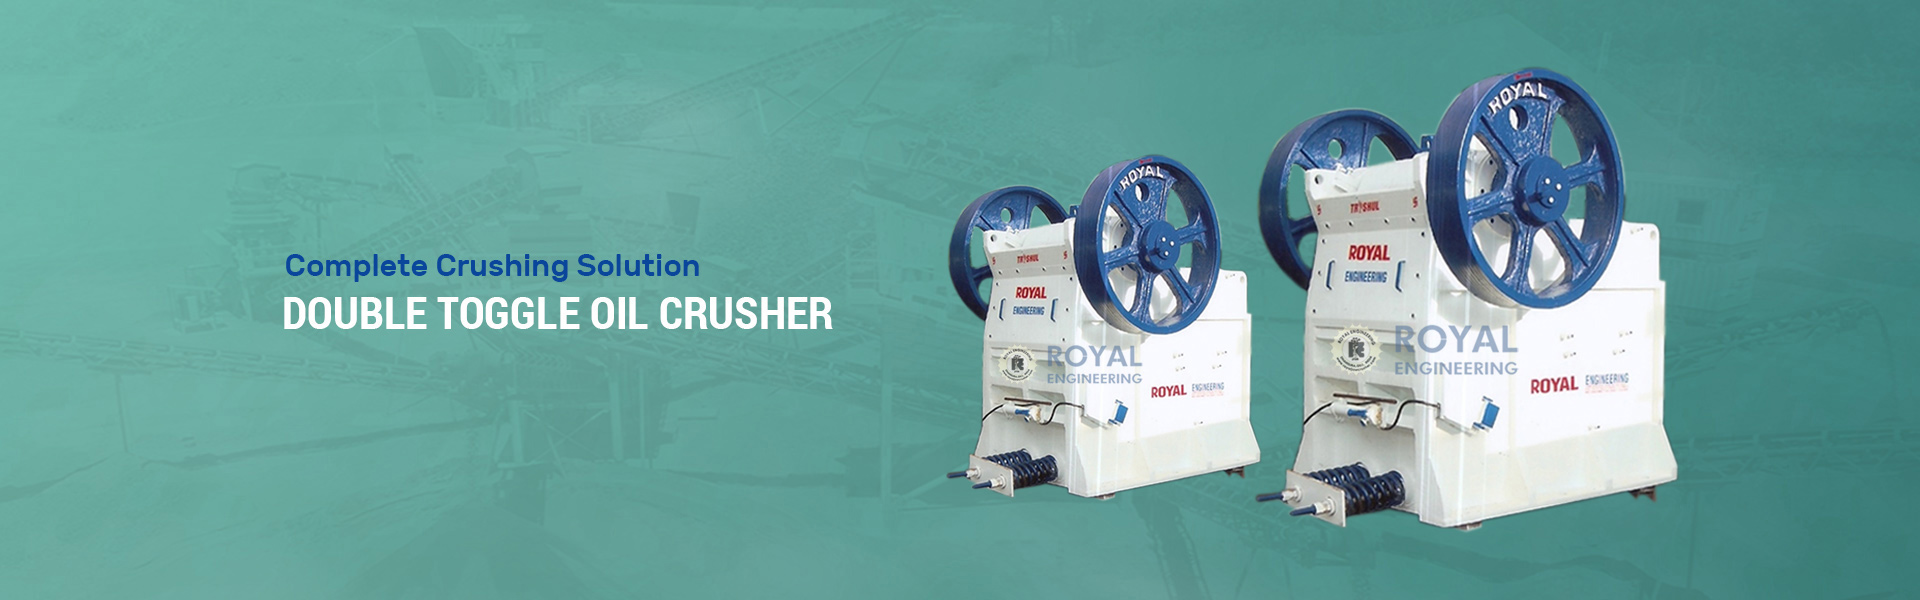 Crushing Plant Manufacturers in india